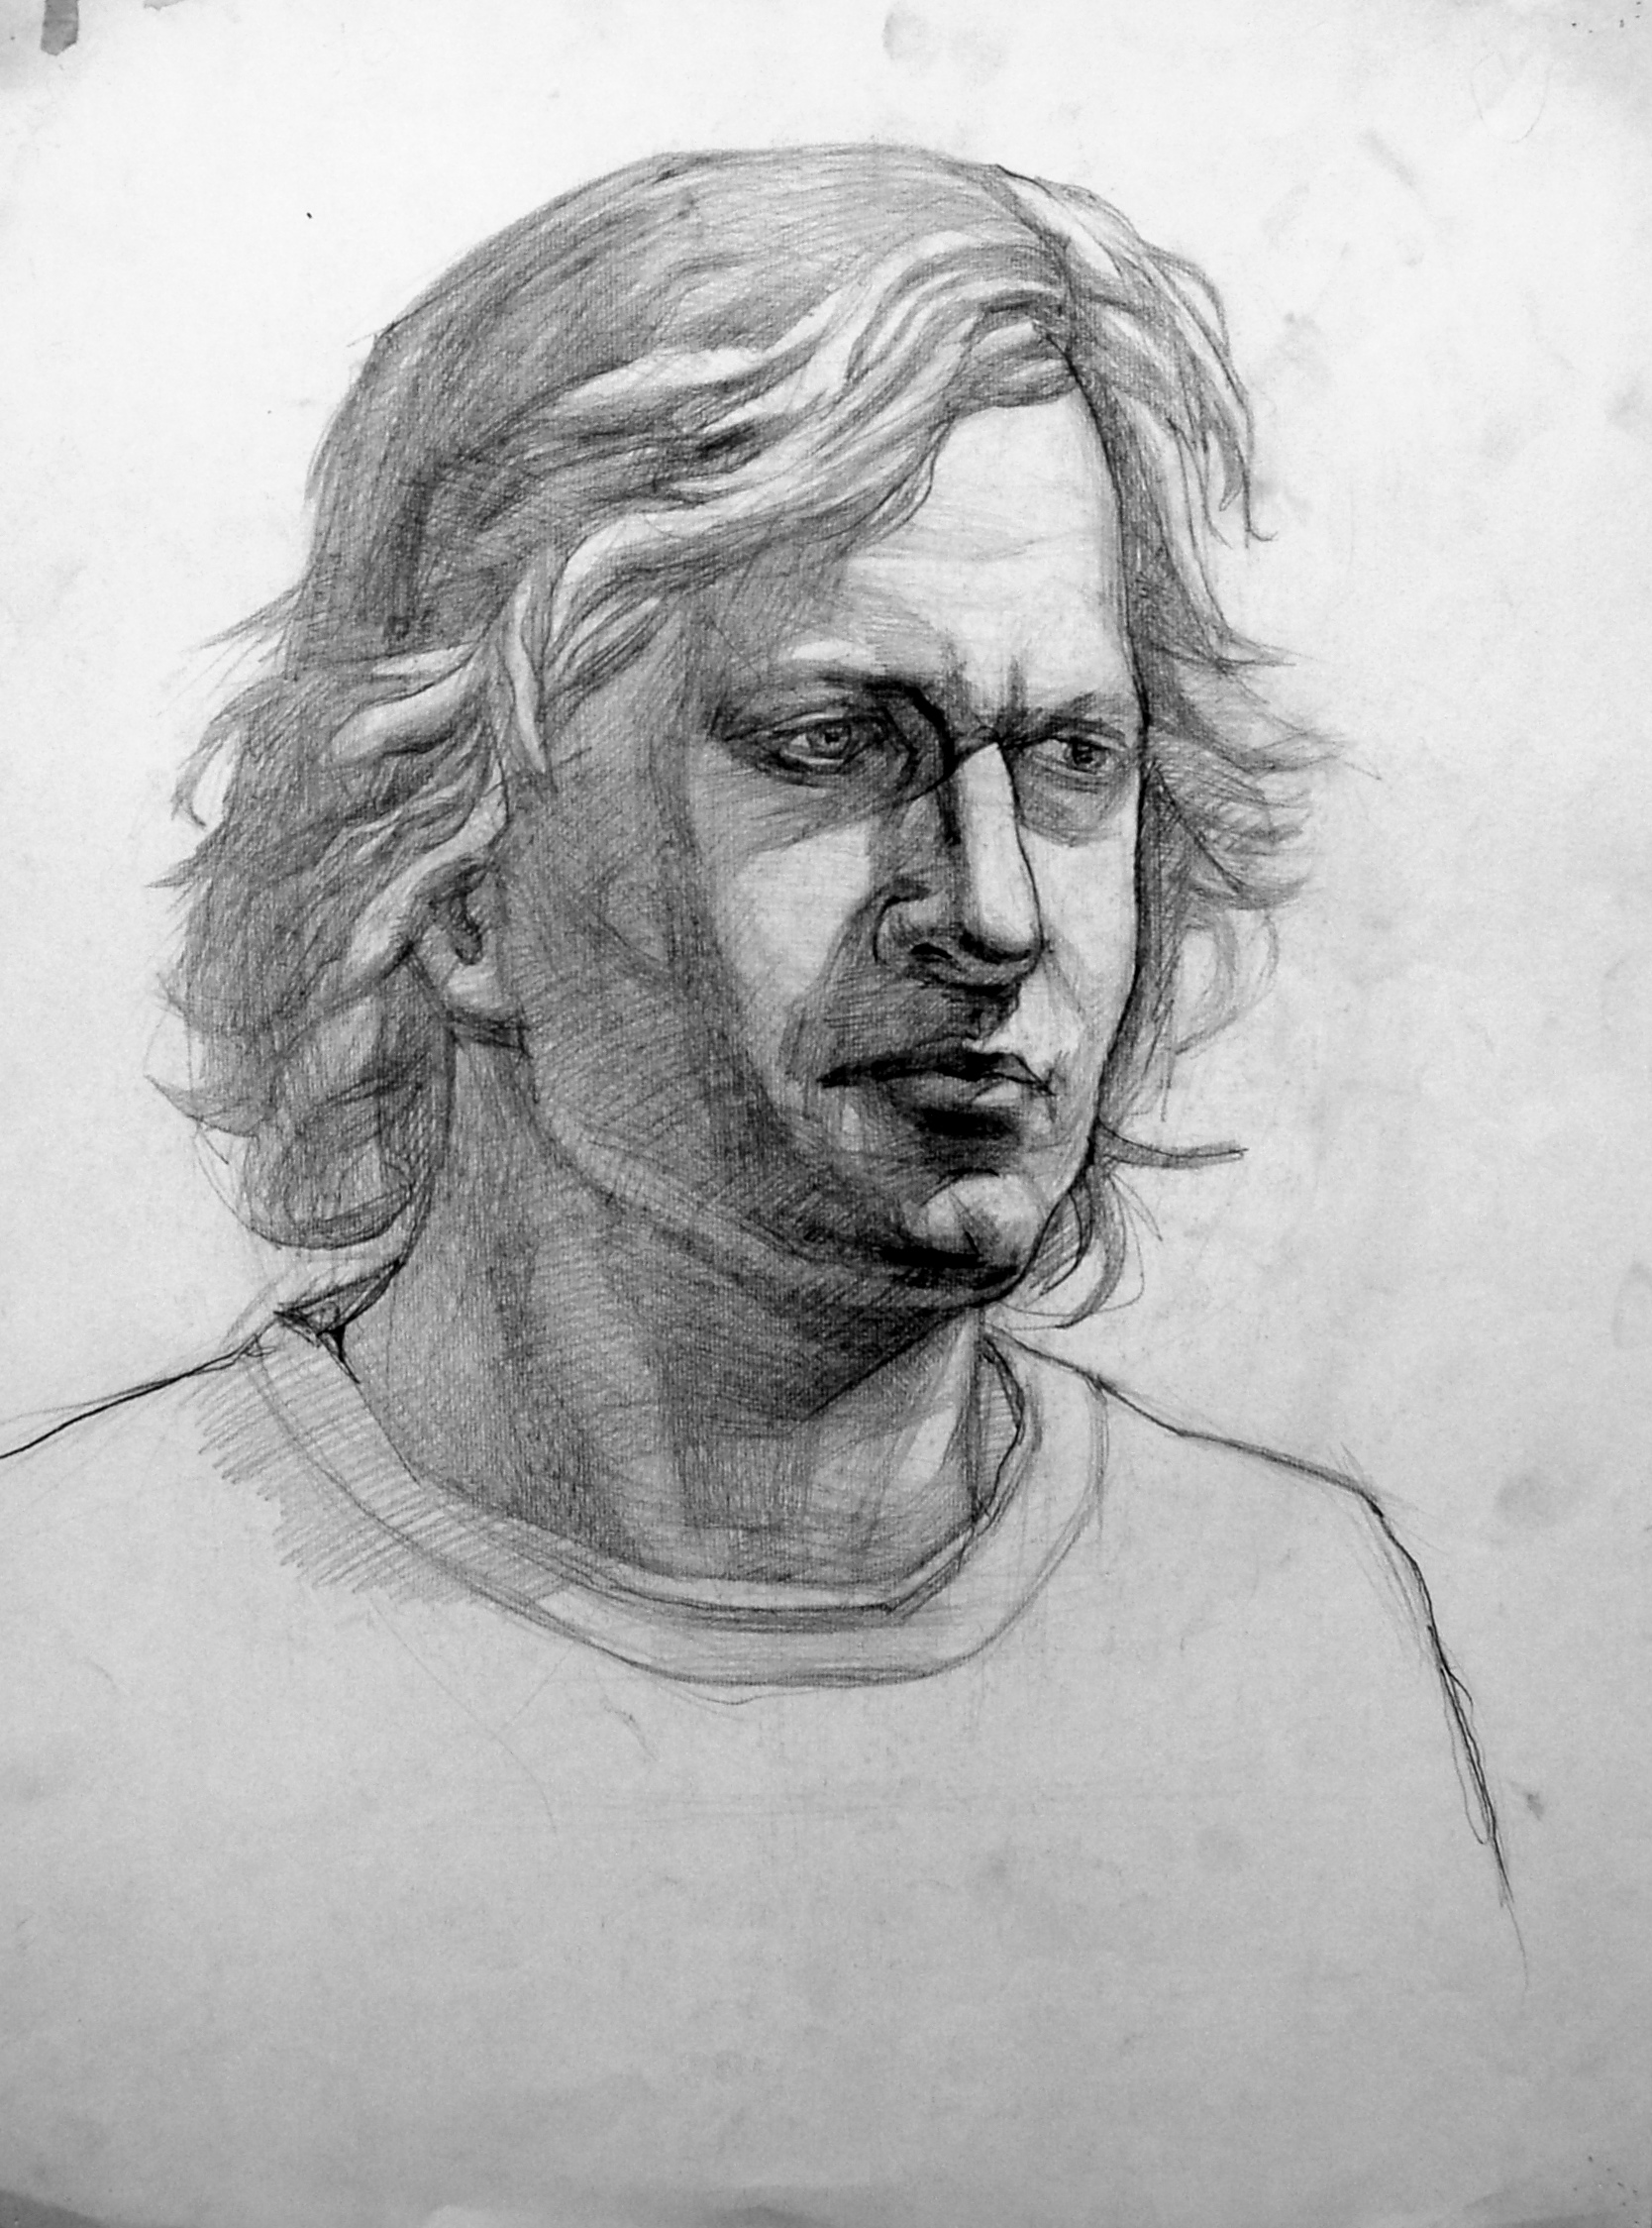 Head Study Graphite on Paper, Juhuon Kim